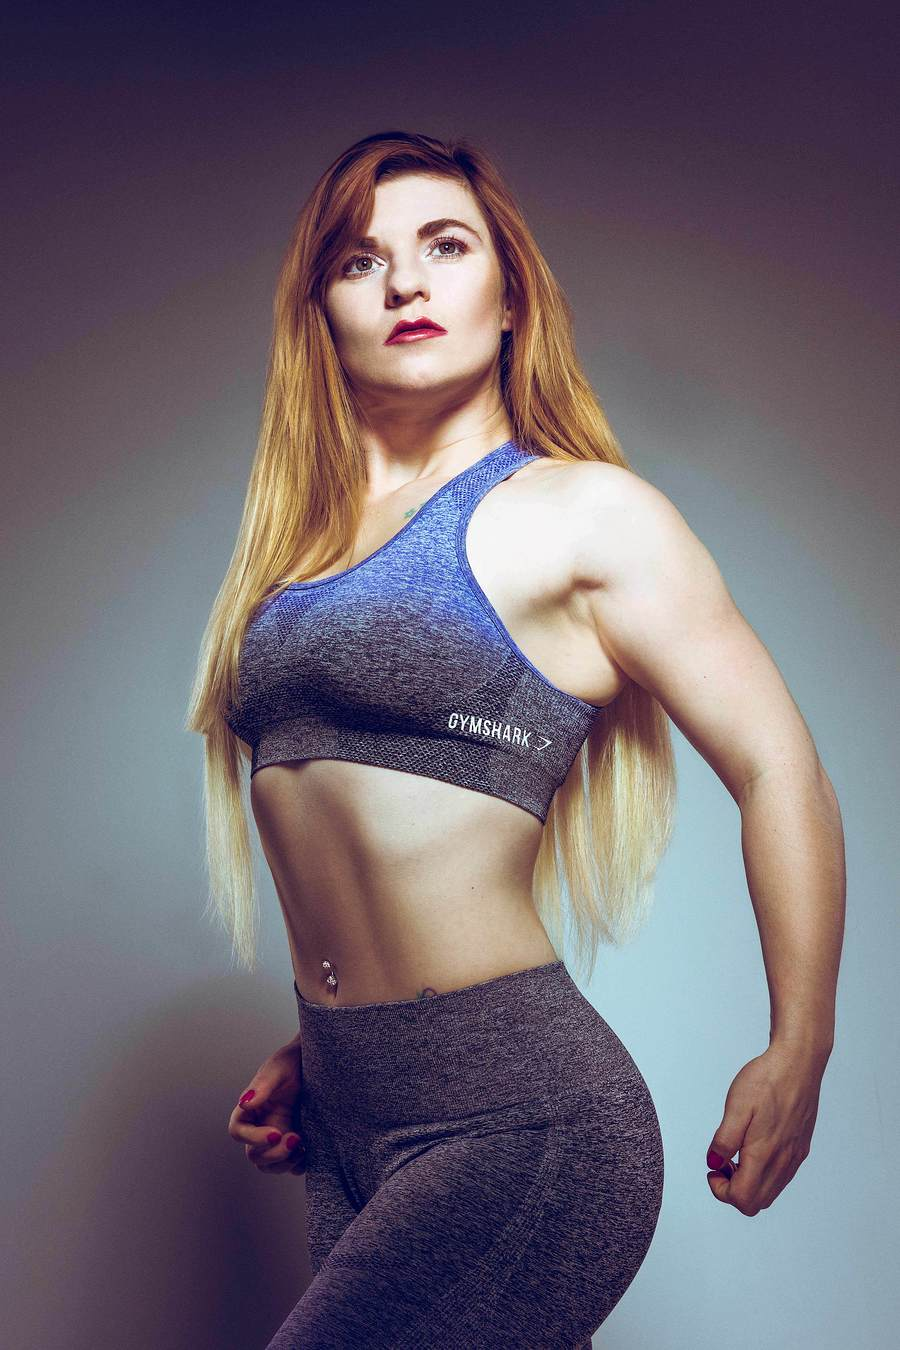 i want muscle / Photography by Grewy, Model Helen-Rose, Post processing by Grewy, Stylist Helen-Rose / Uploaded 18th December 2018 @ 04:23 PM